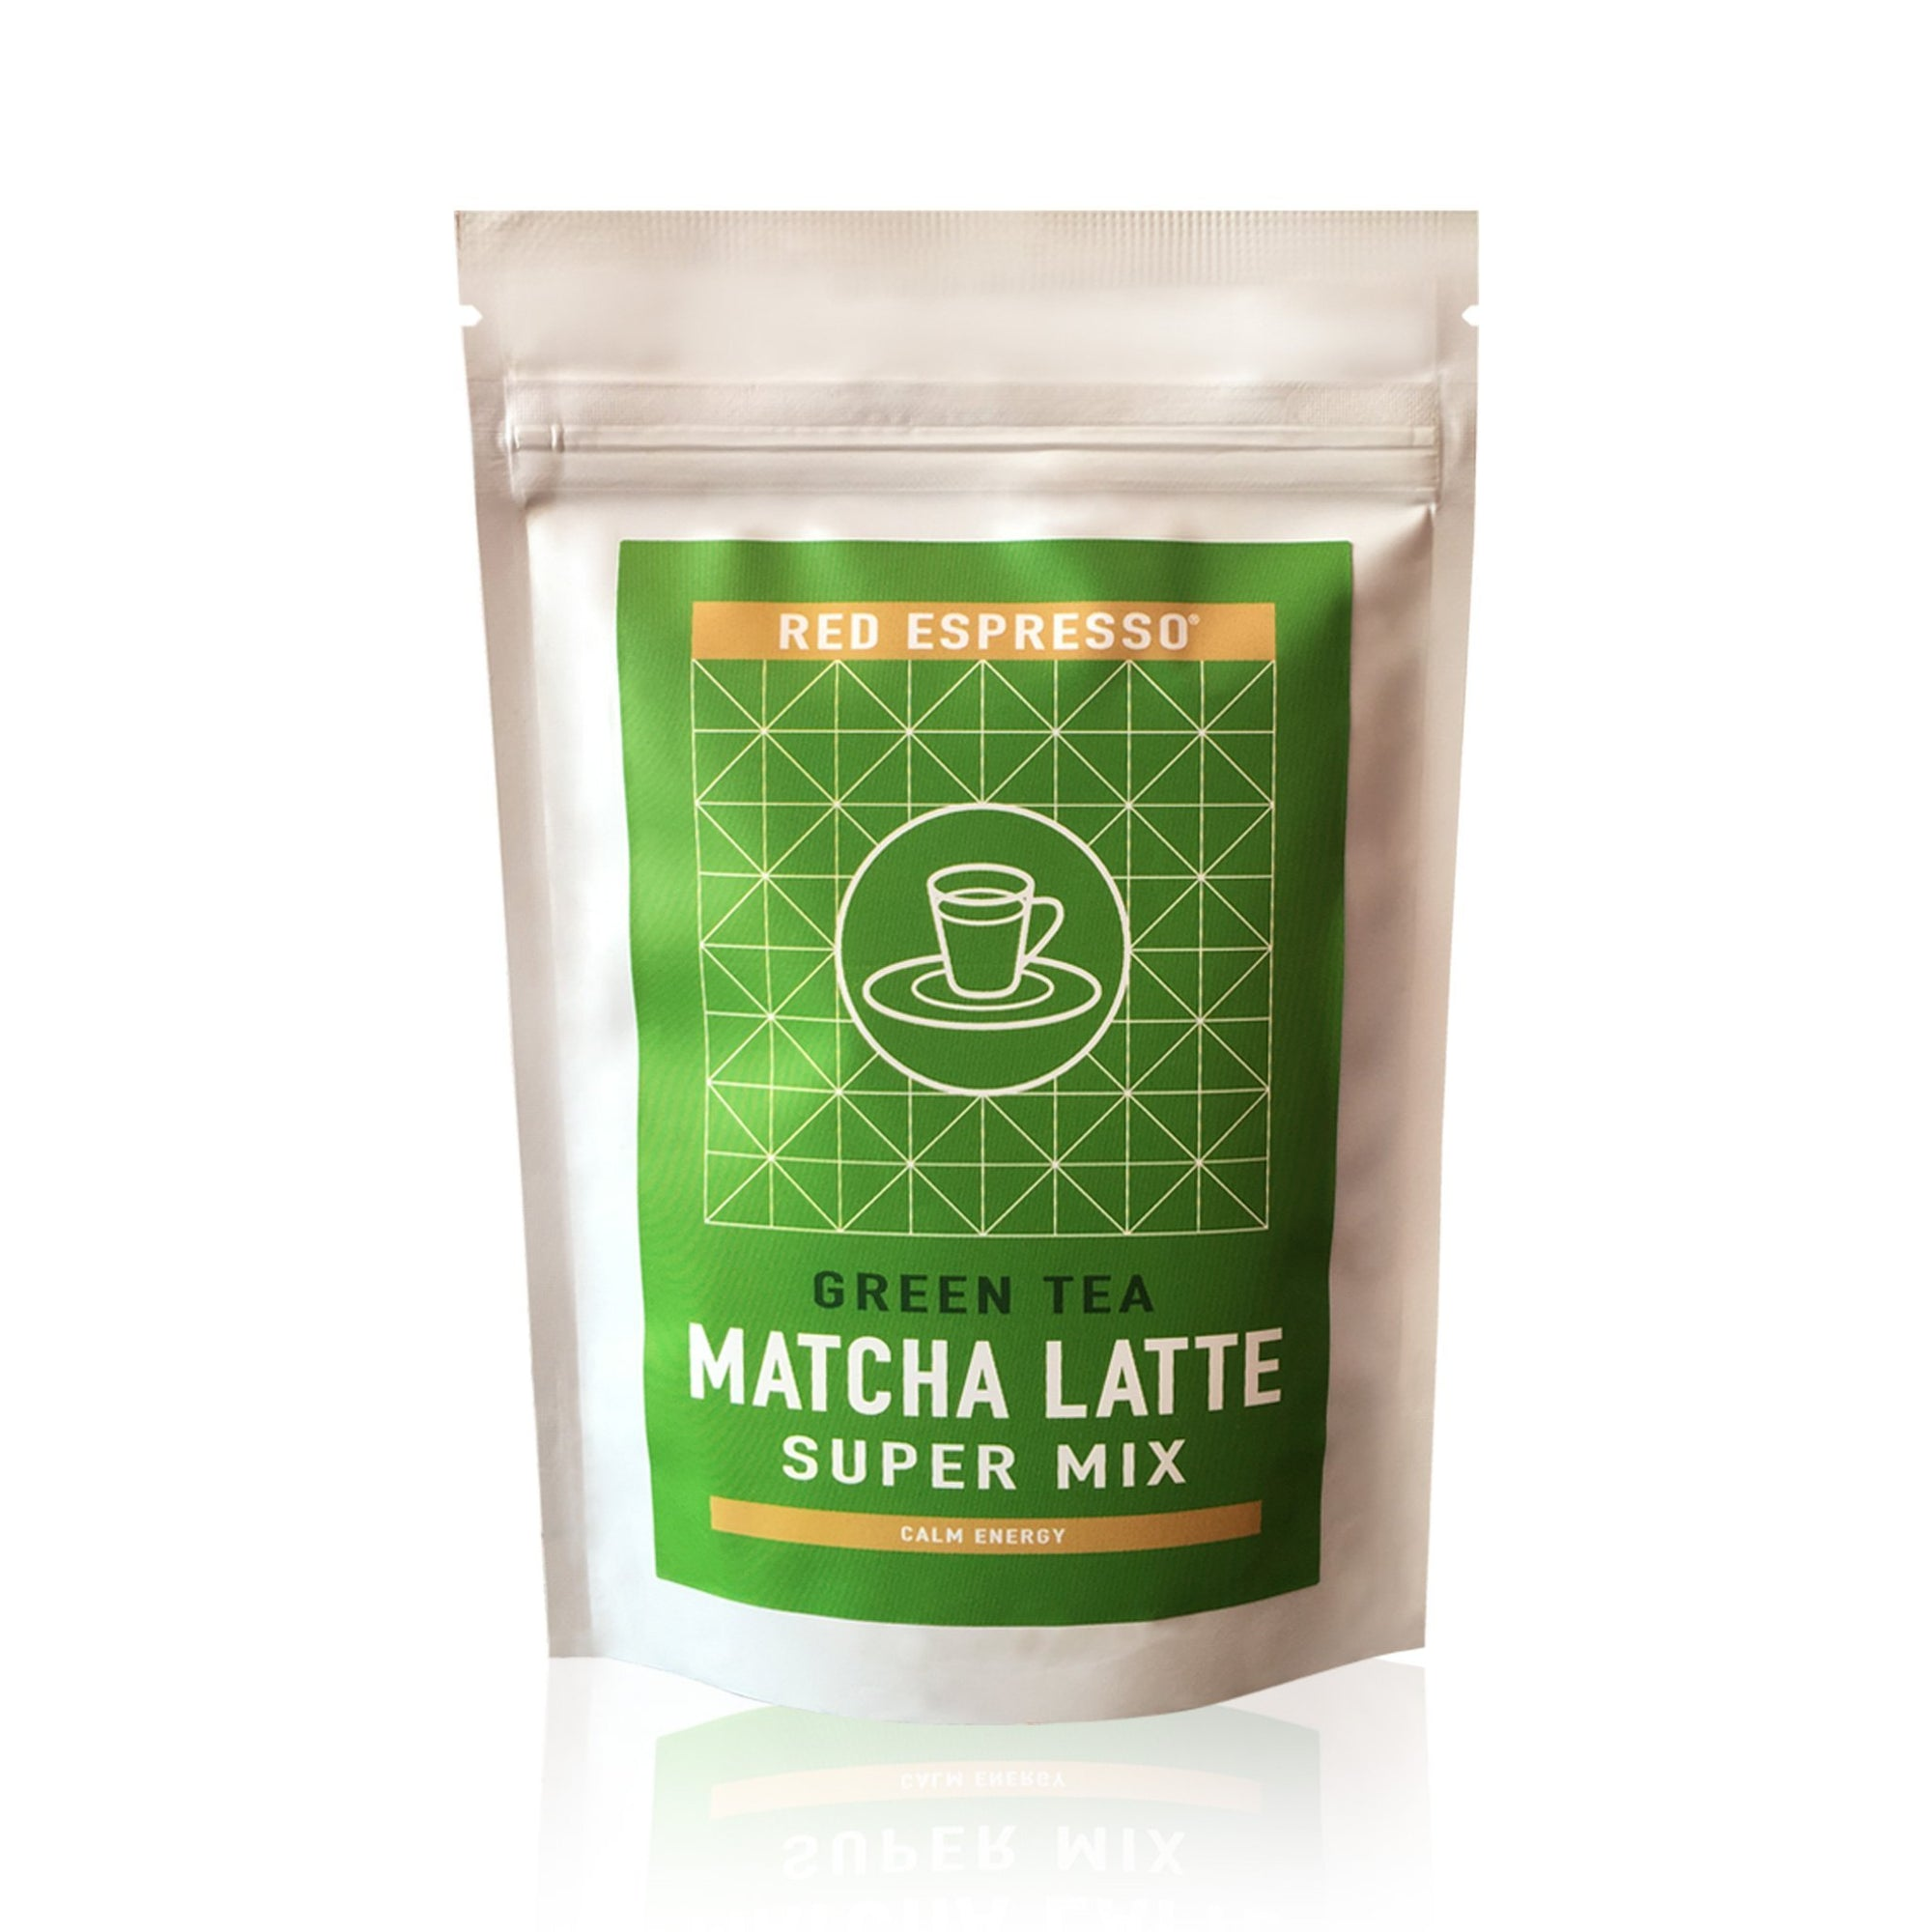 Red Espresso - Matcha latte - Green tea mix